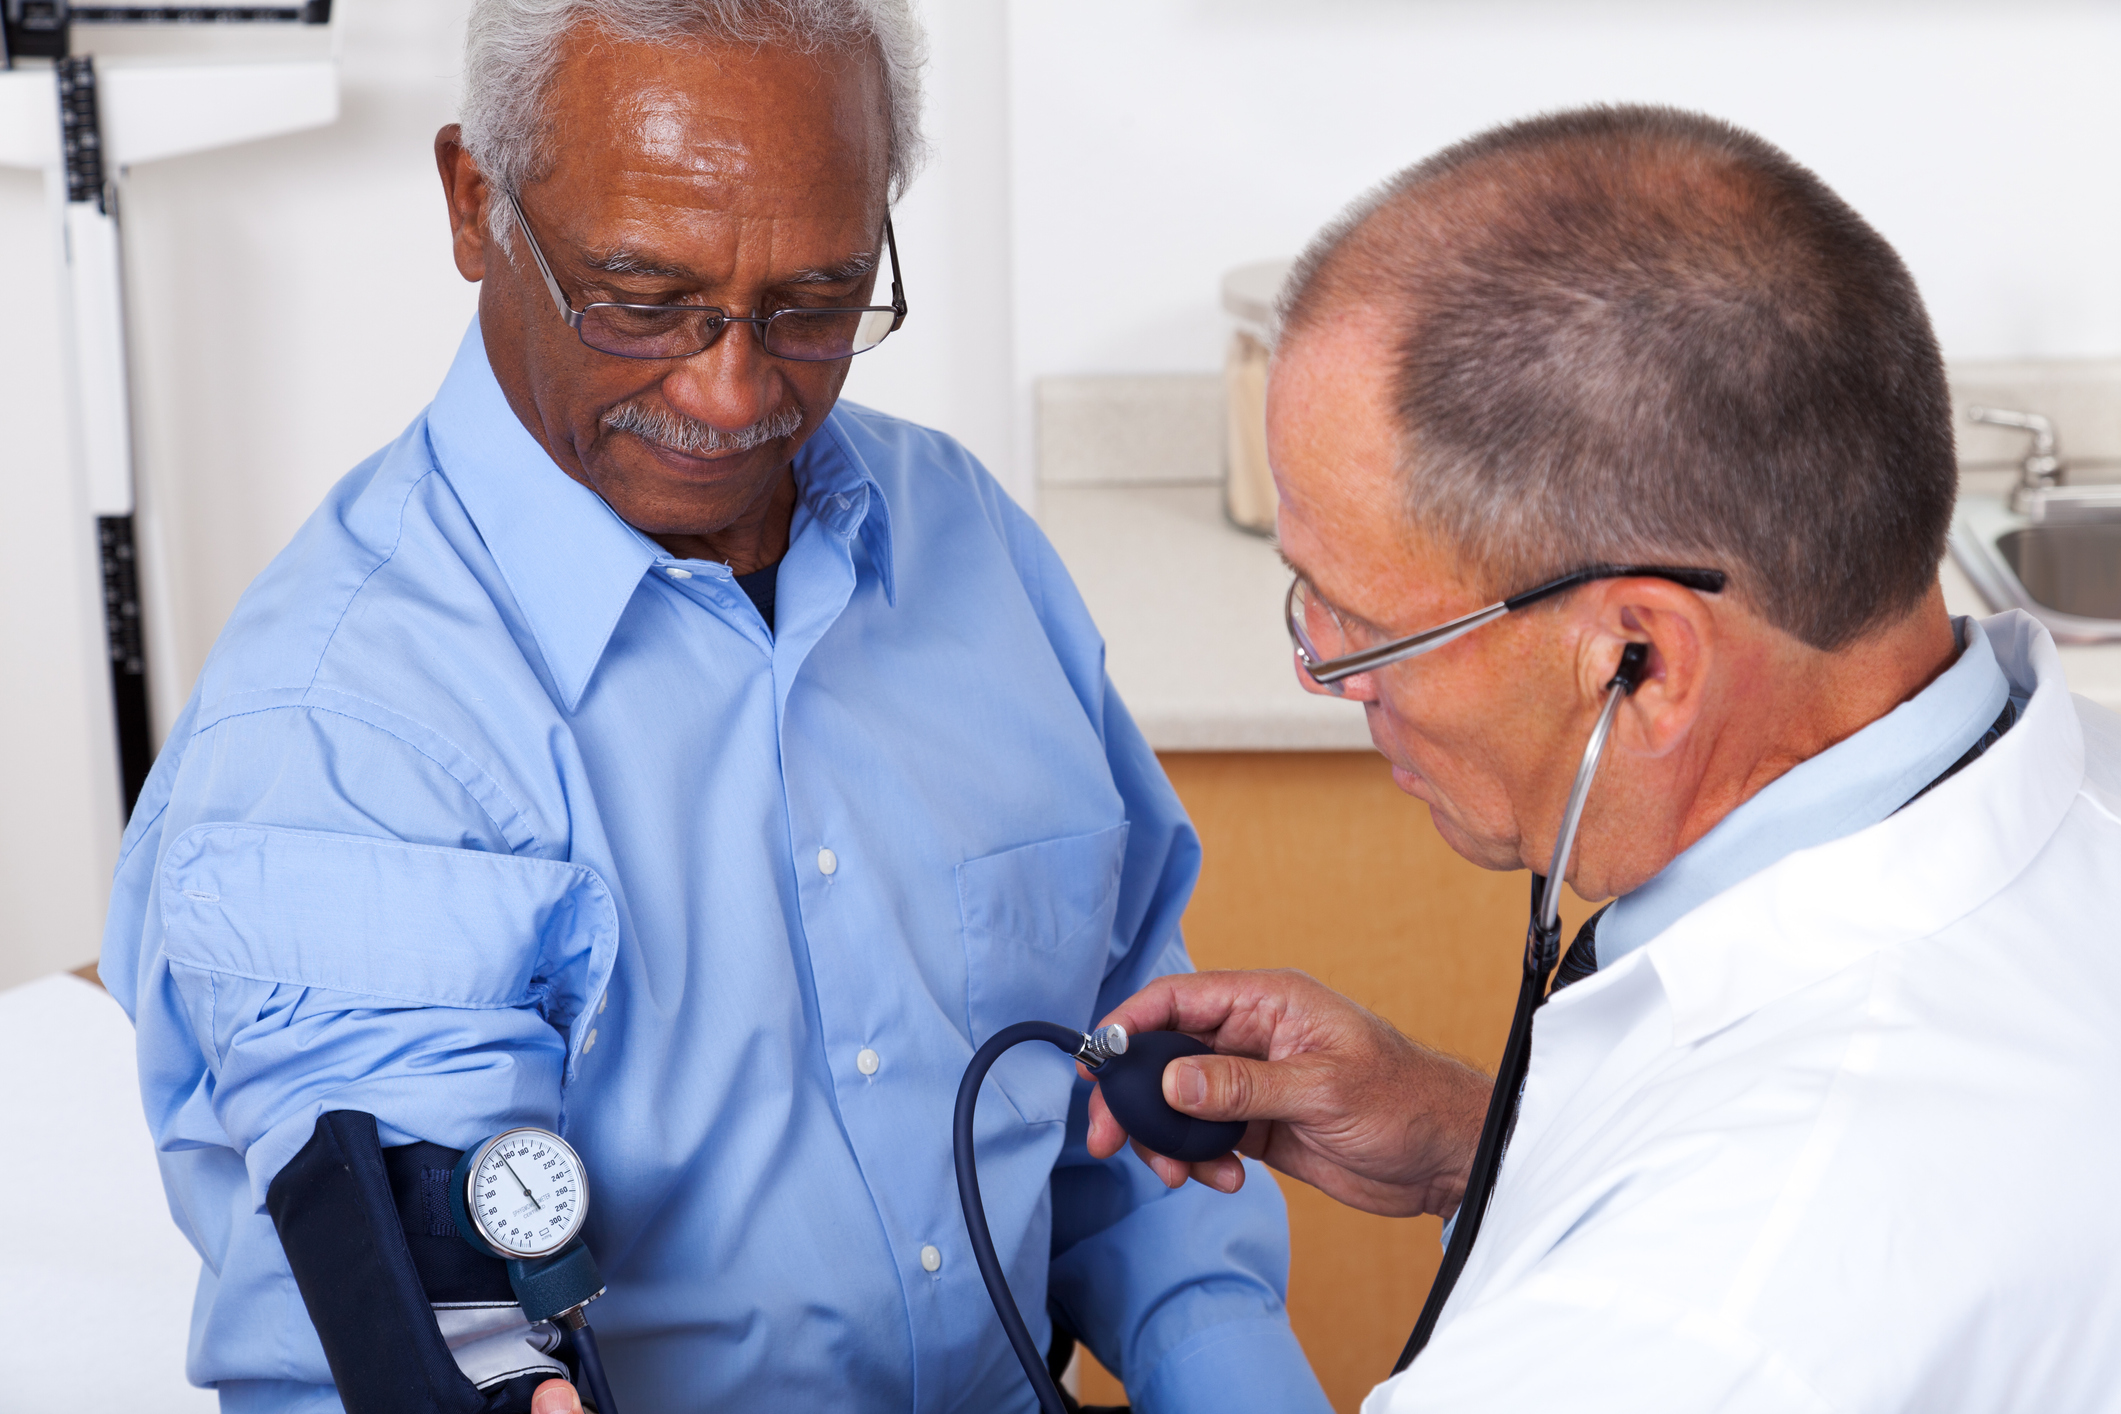 Man having his doctor check his blood pressure